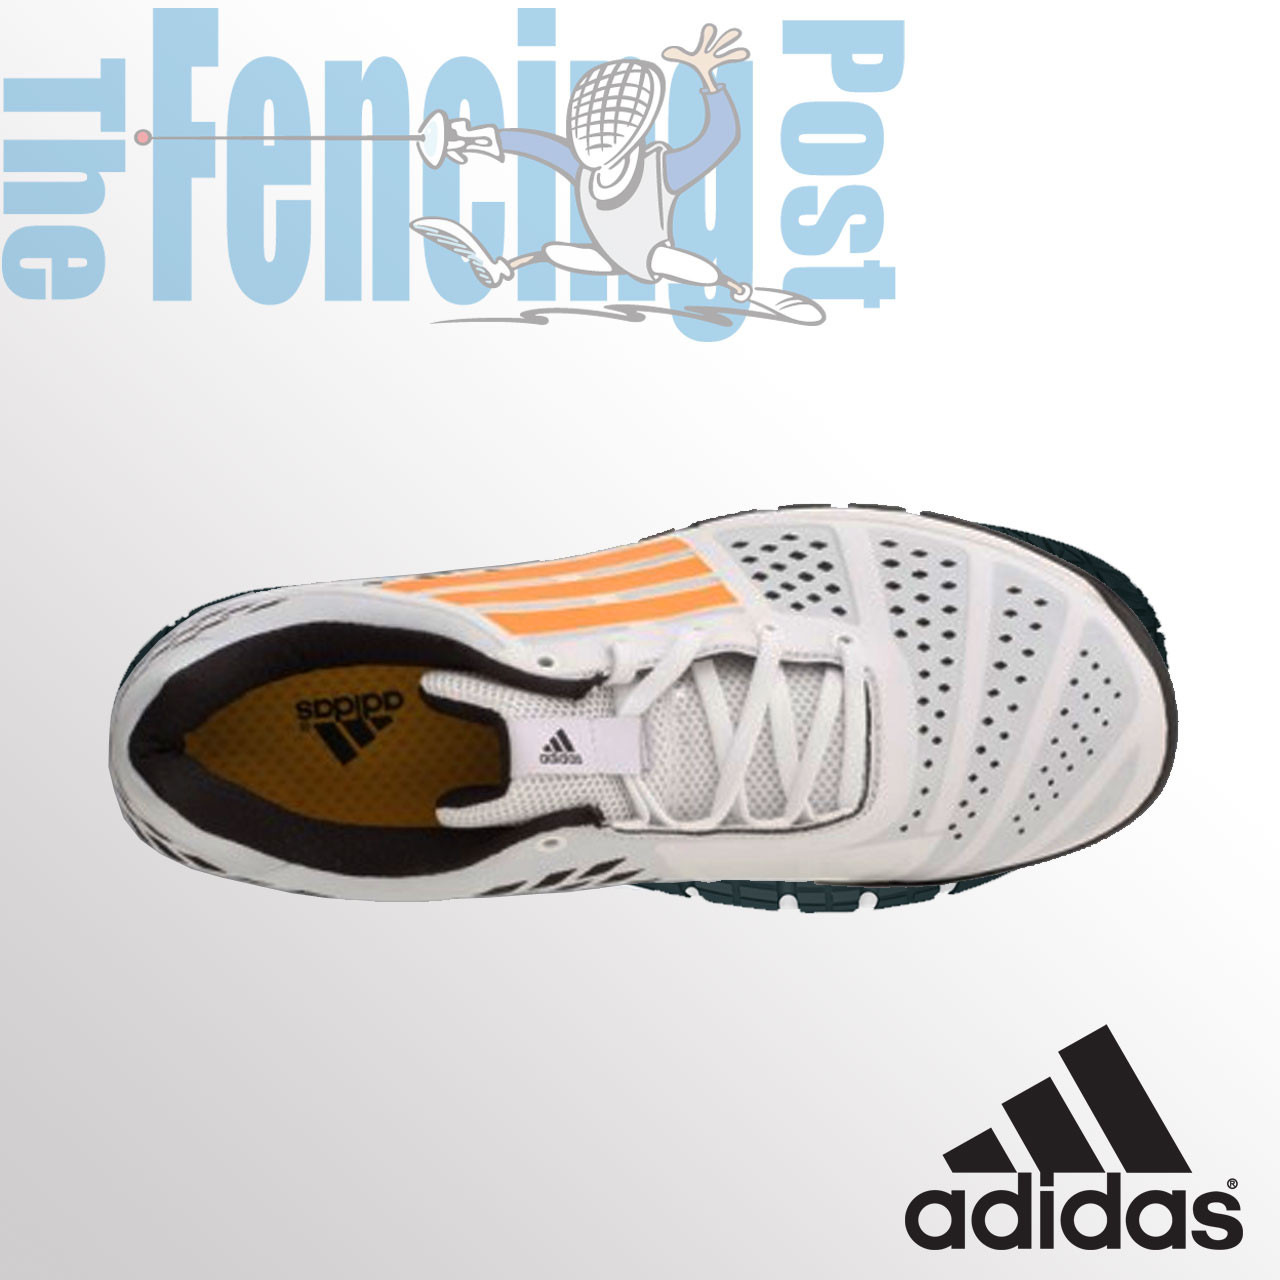 Clearance Adidas Patinando Fencing Shoes